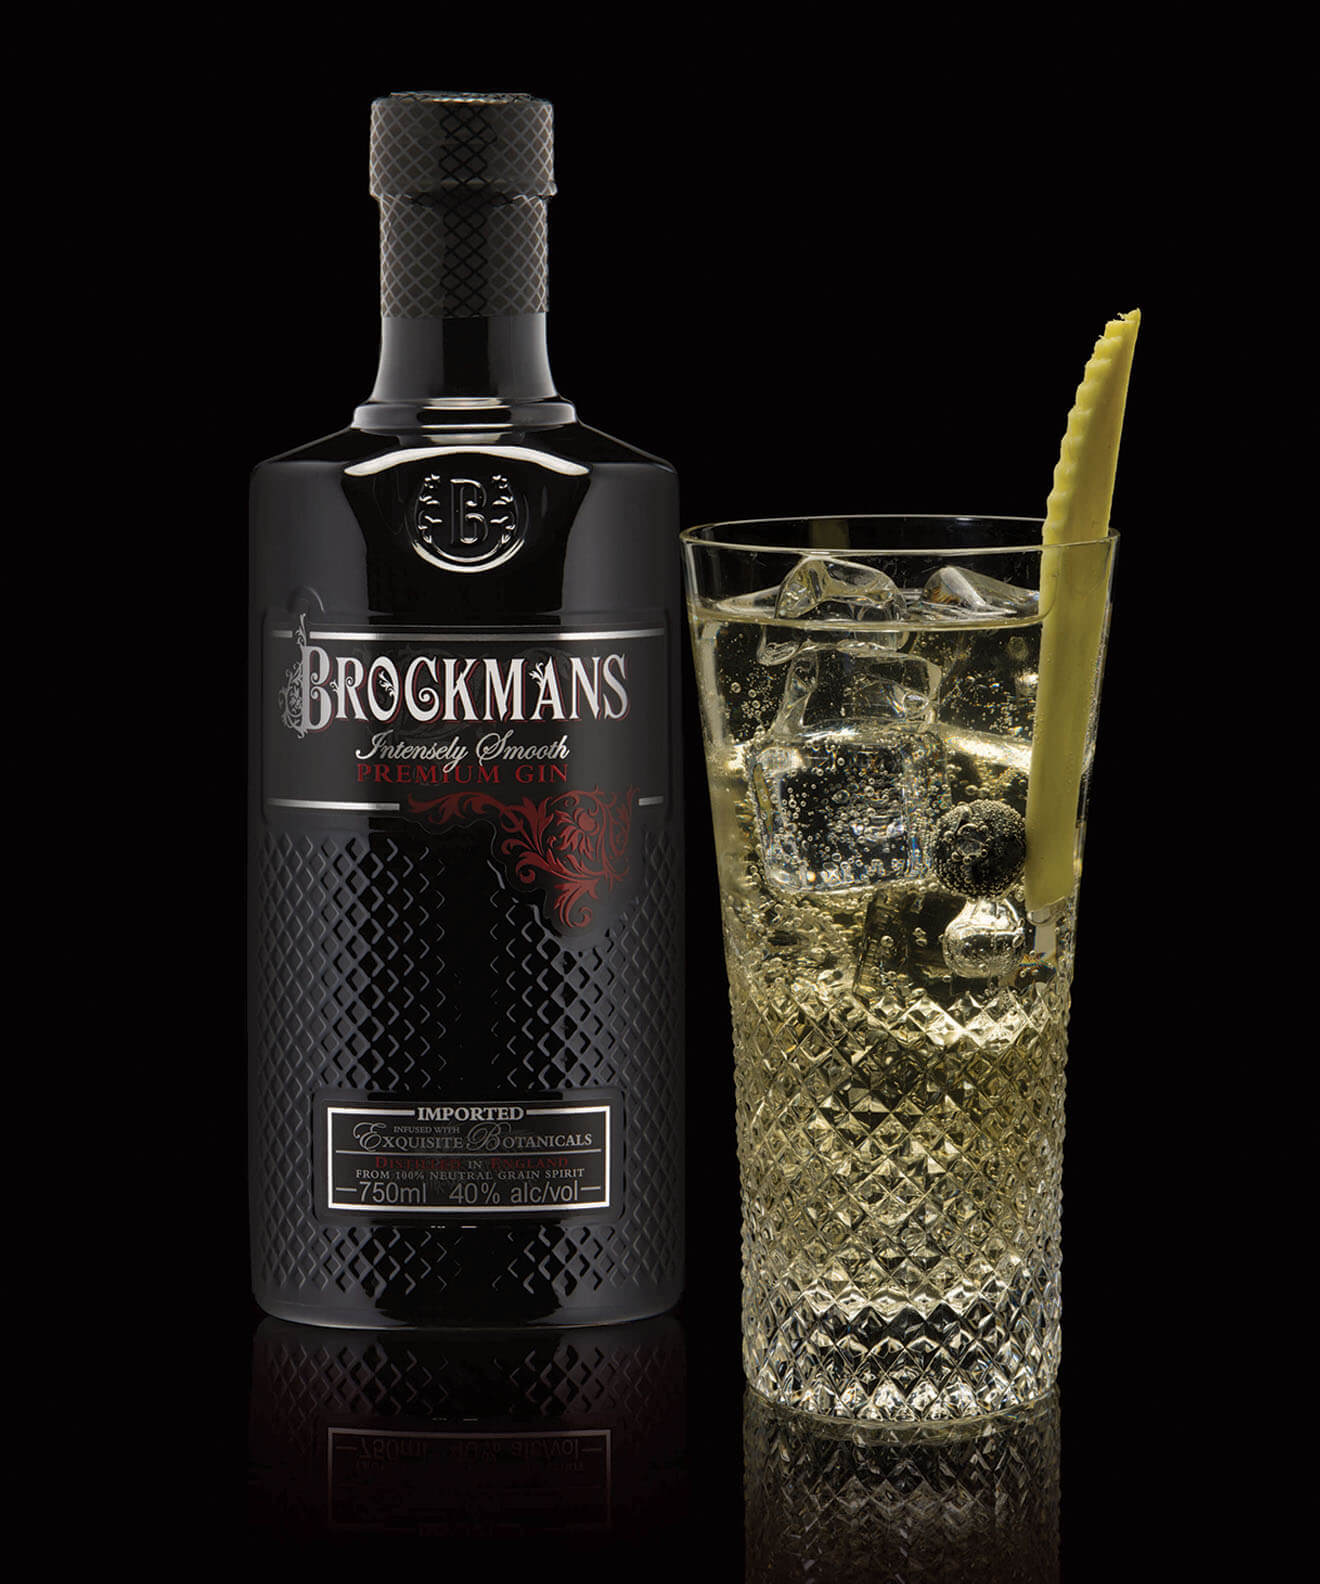 Brockmans Gin & Ginger